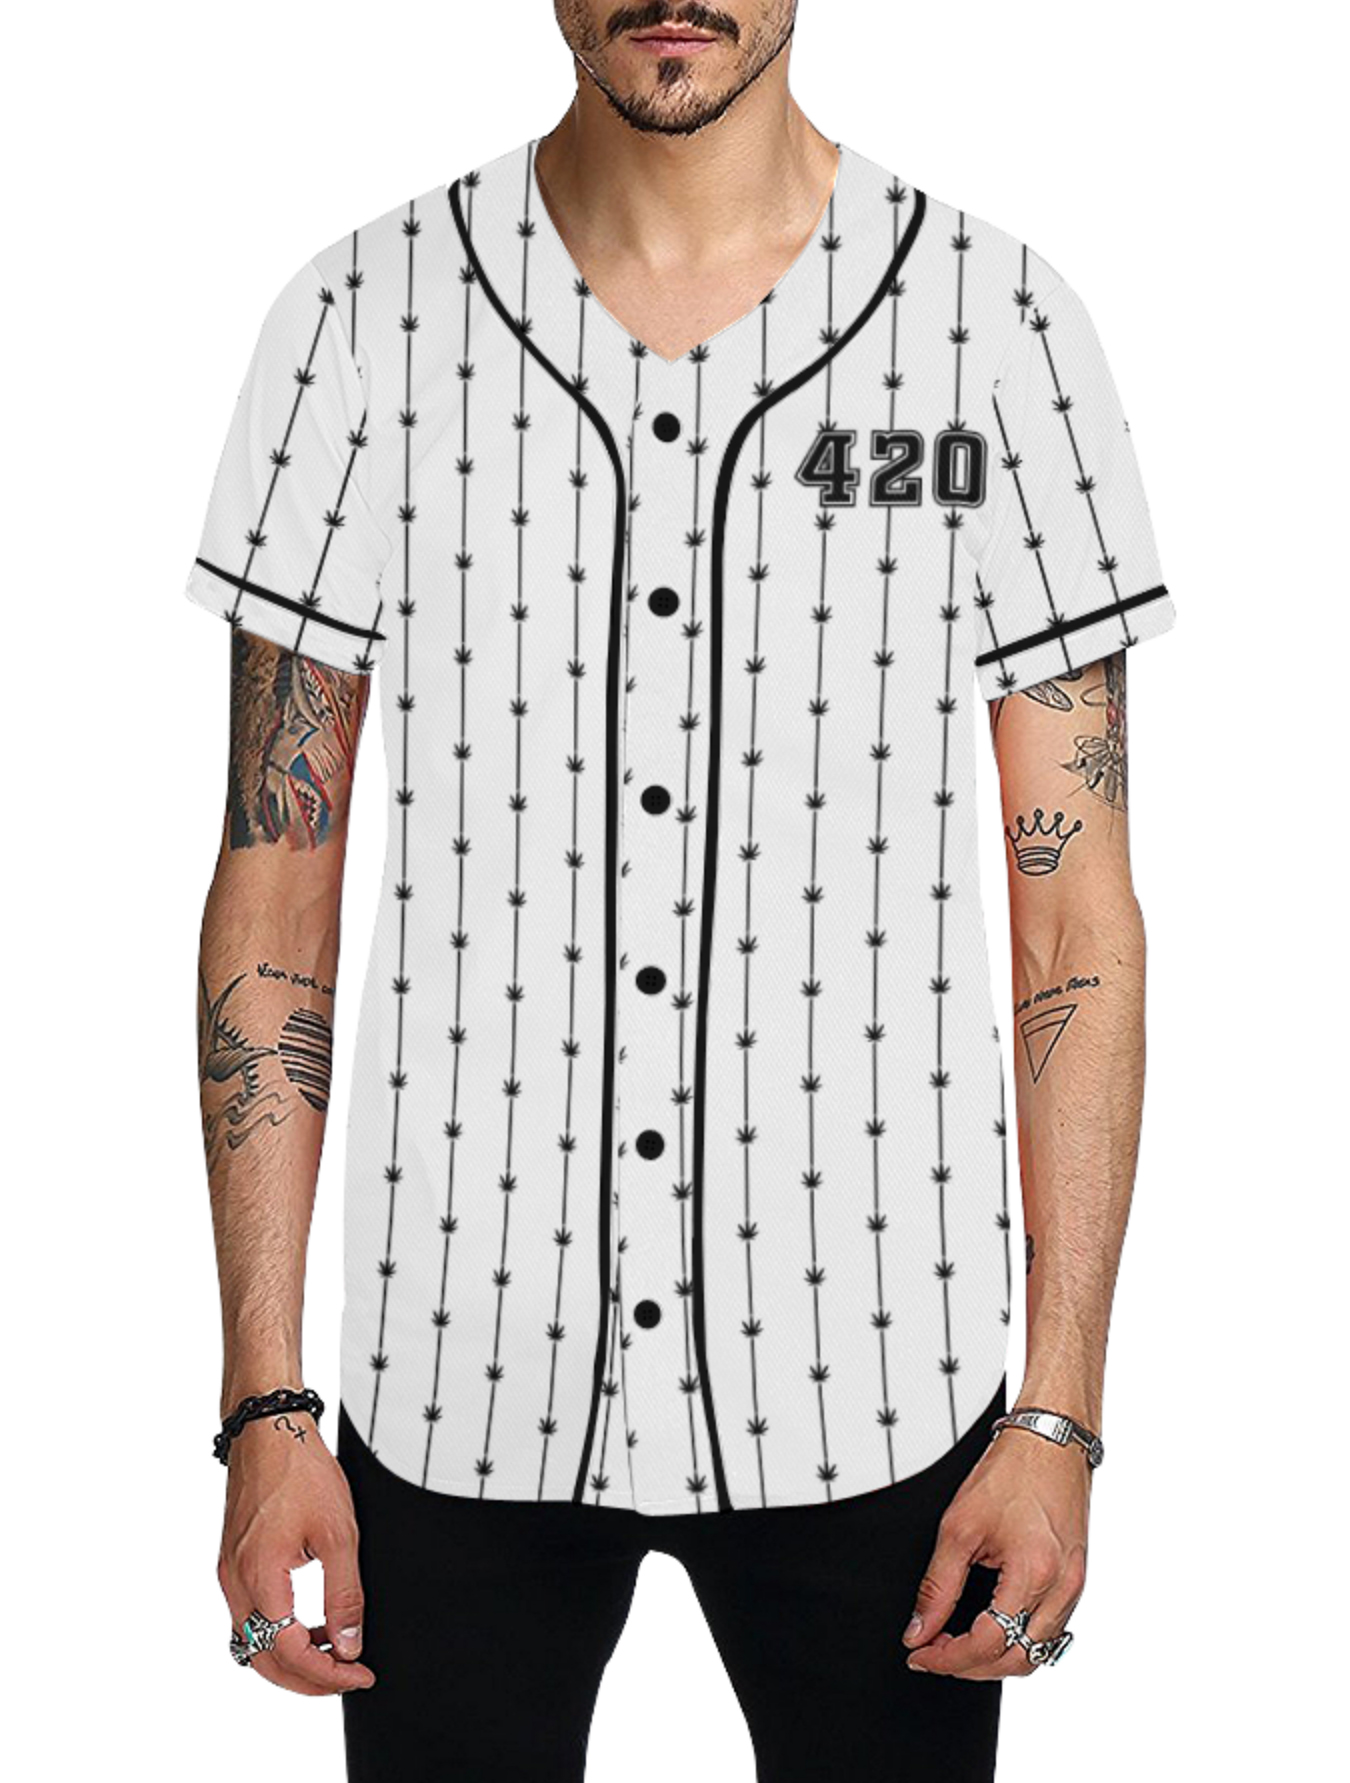 just get high_420_baseball jersey_web